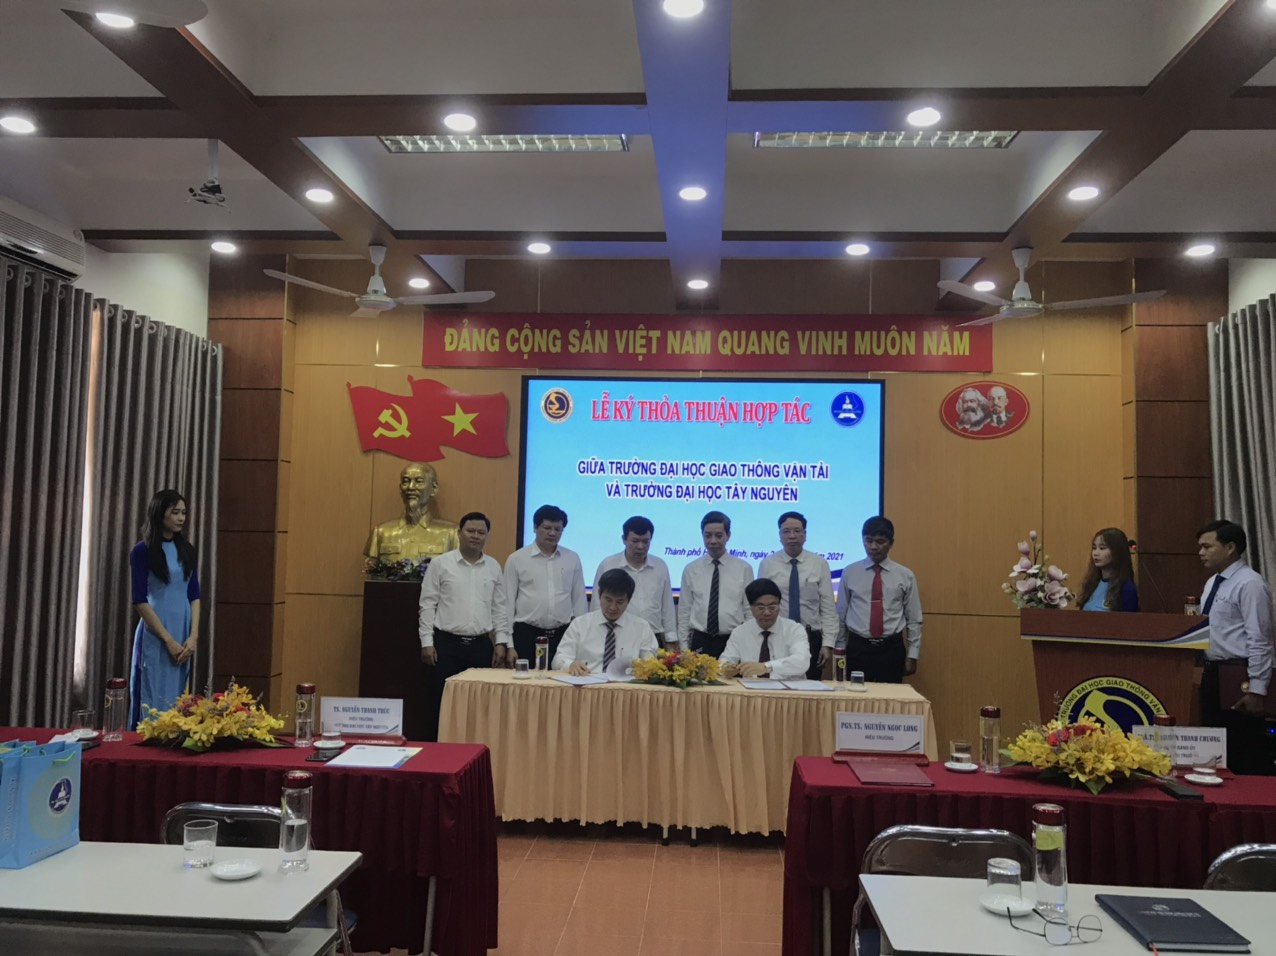 MOU signing ceremony between the University of Transport and Communications (UTC) and Tay Nguyen University (TNU)